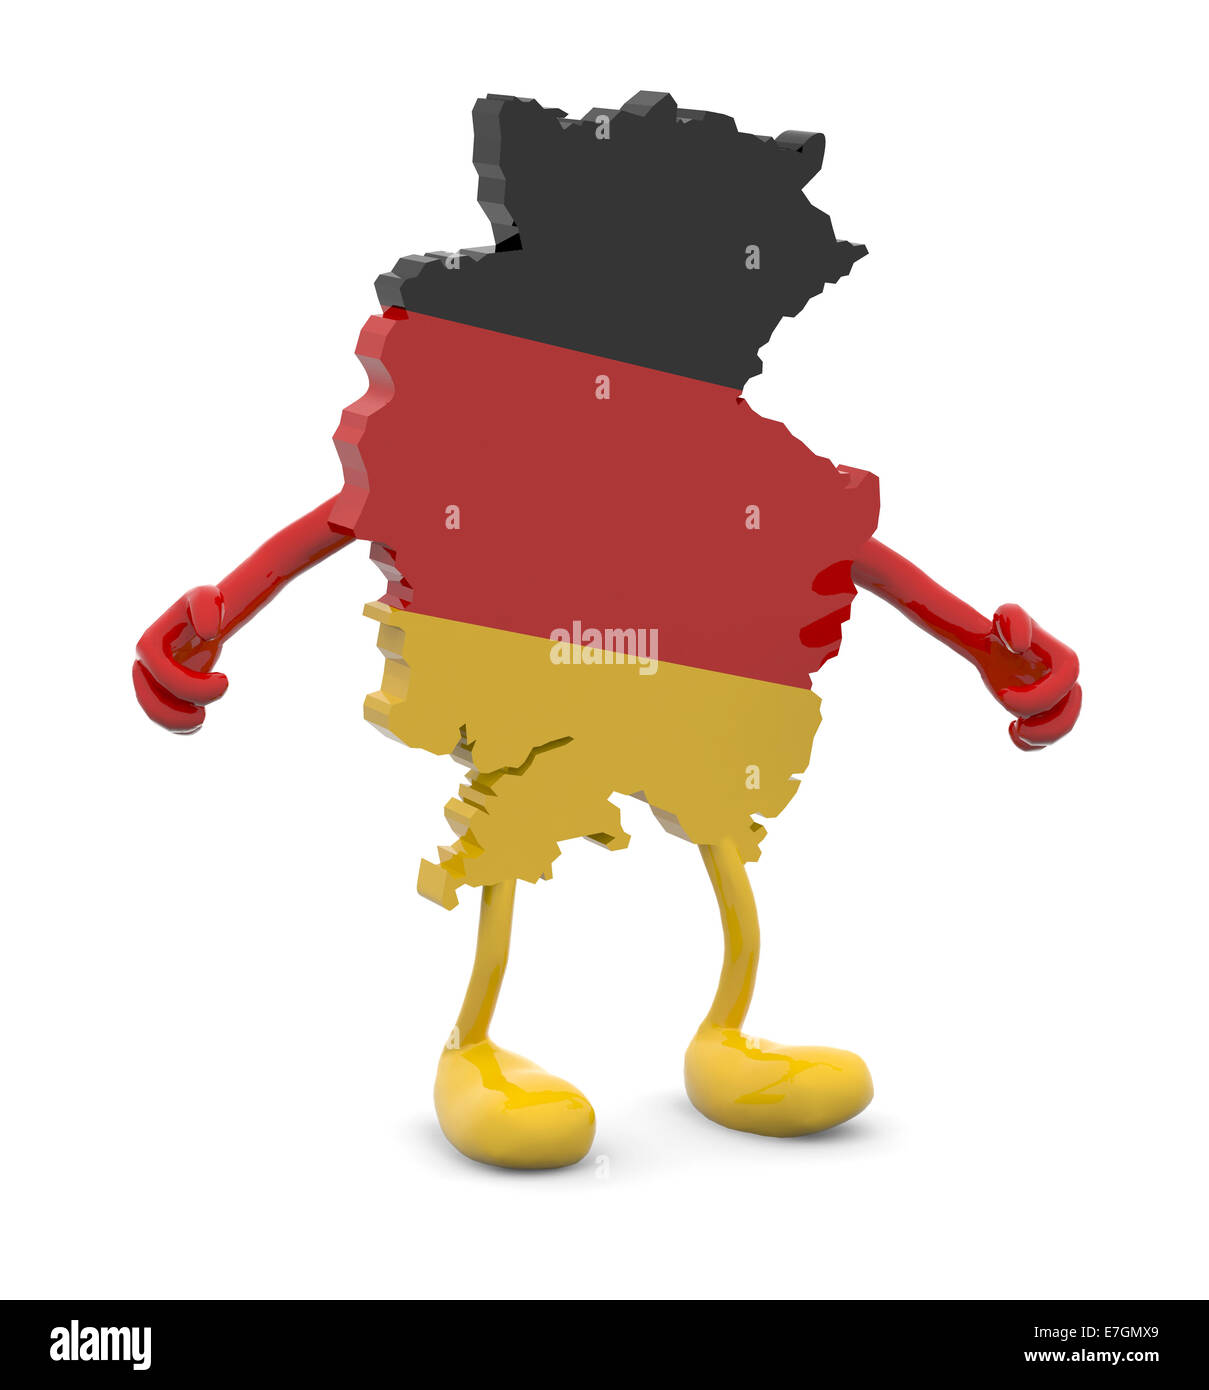 Cartoon Map Of Germany.Germany Map With Arms And Legs Cartoon 3d Illustration Stock Photo